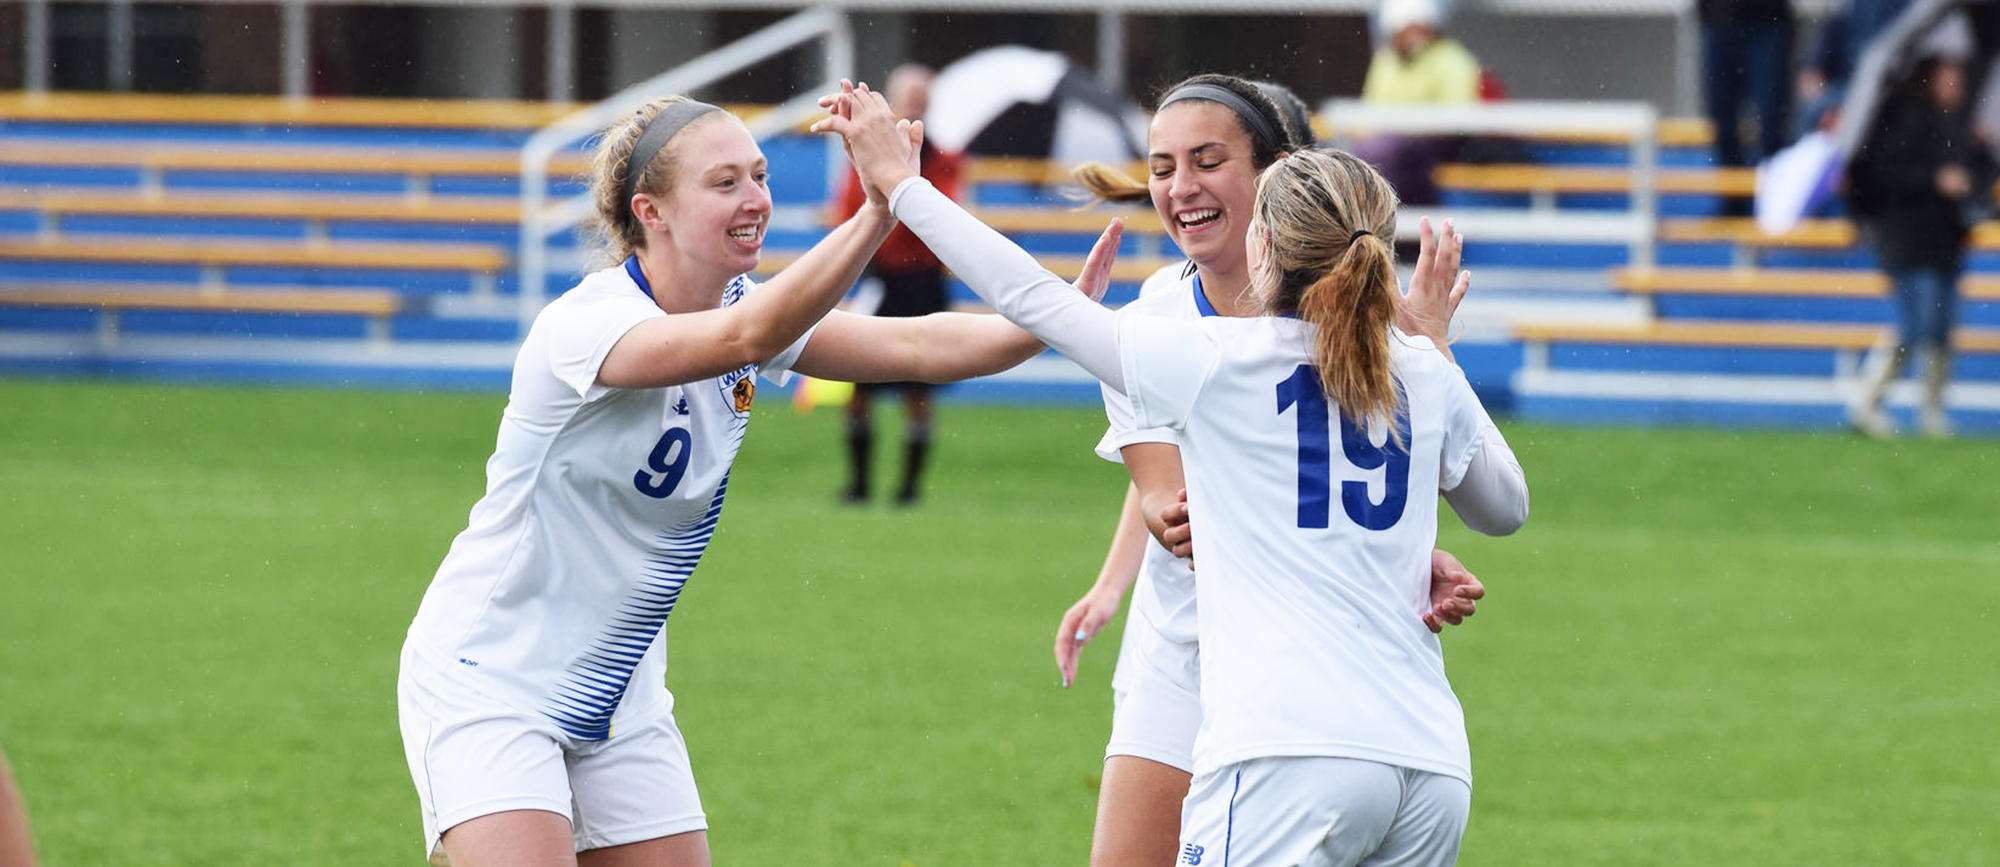 Freshman Vanessa Chiarella (19) registered a hat trick in Western New England's 5-0 shutout win over Curry on Saturday. (Photo by Rachael Margossian)